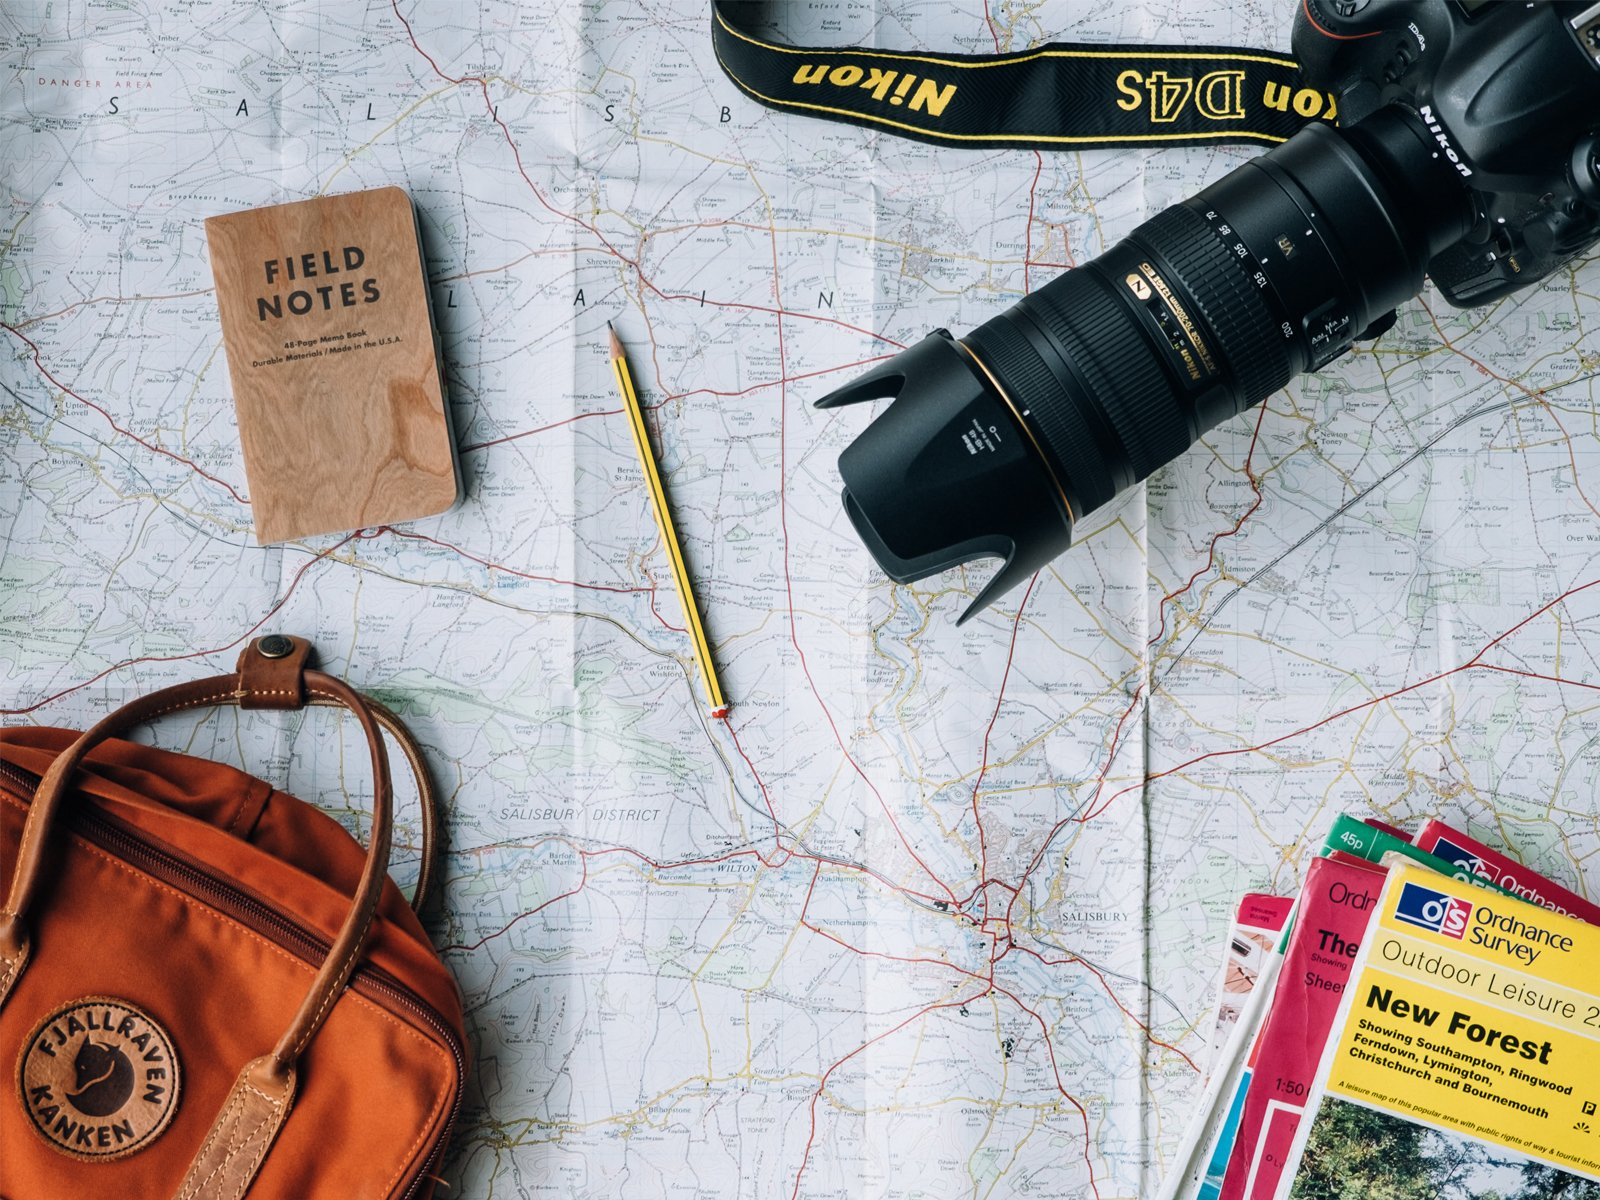 camera, travel books, and backpack laid out on a map